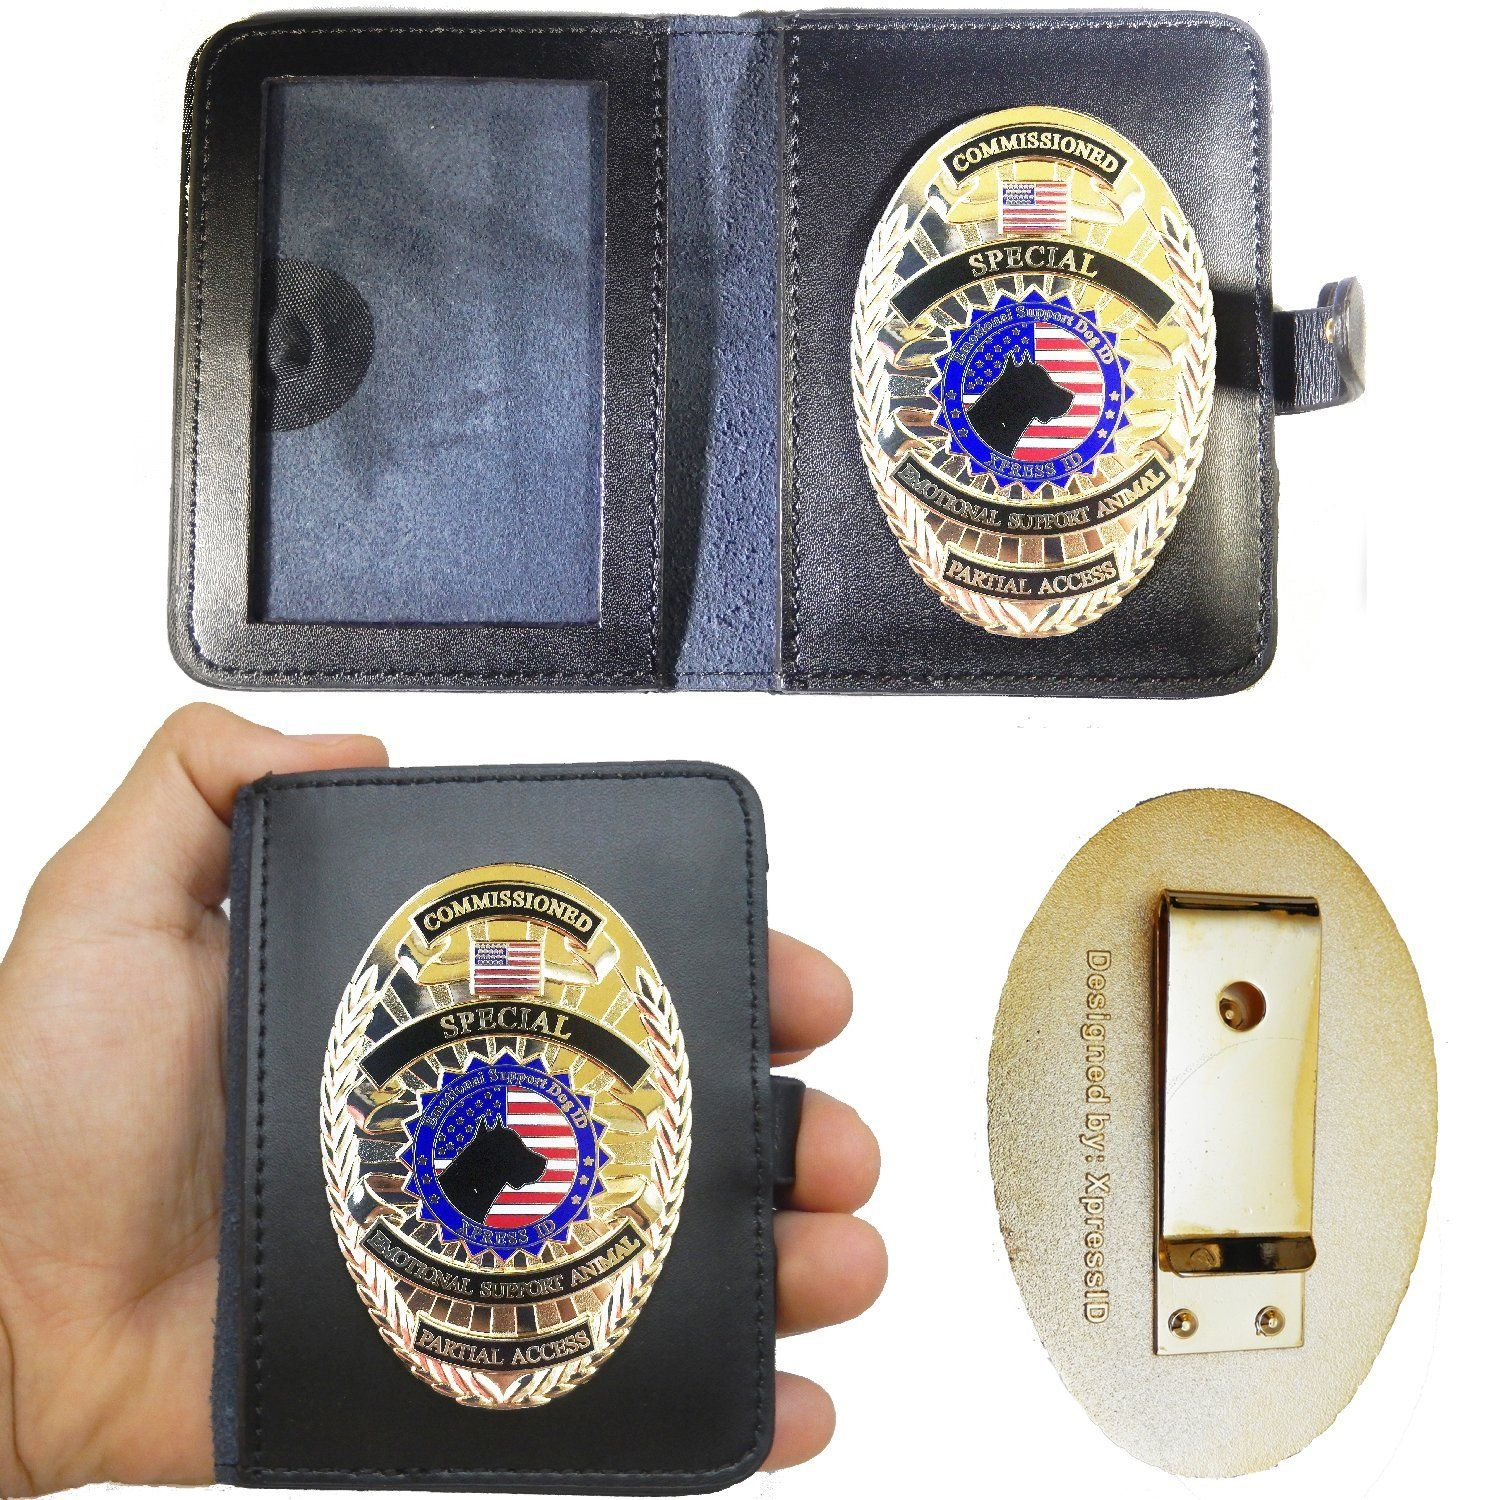 Emotional Support Dog Badge and Leather Wallet By XpressID